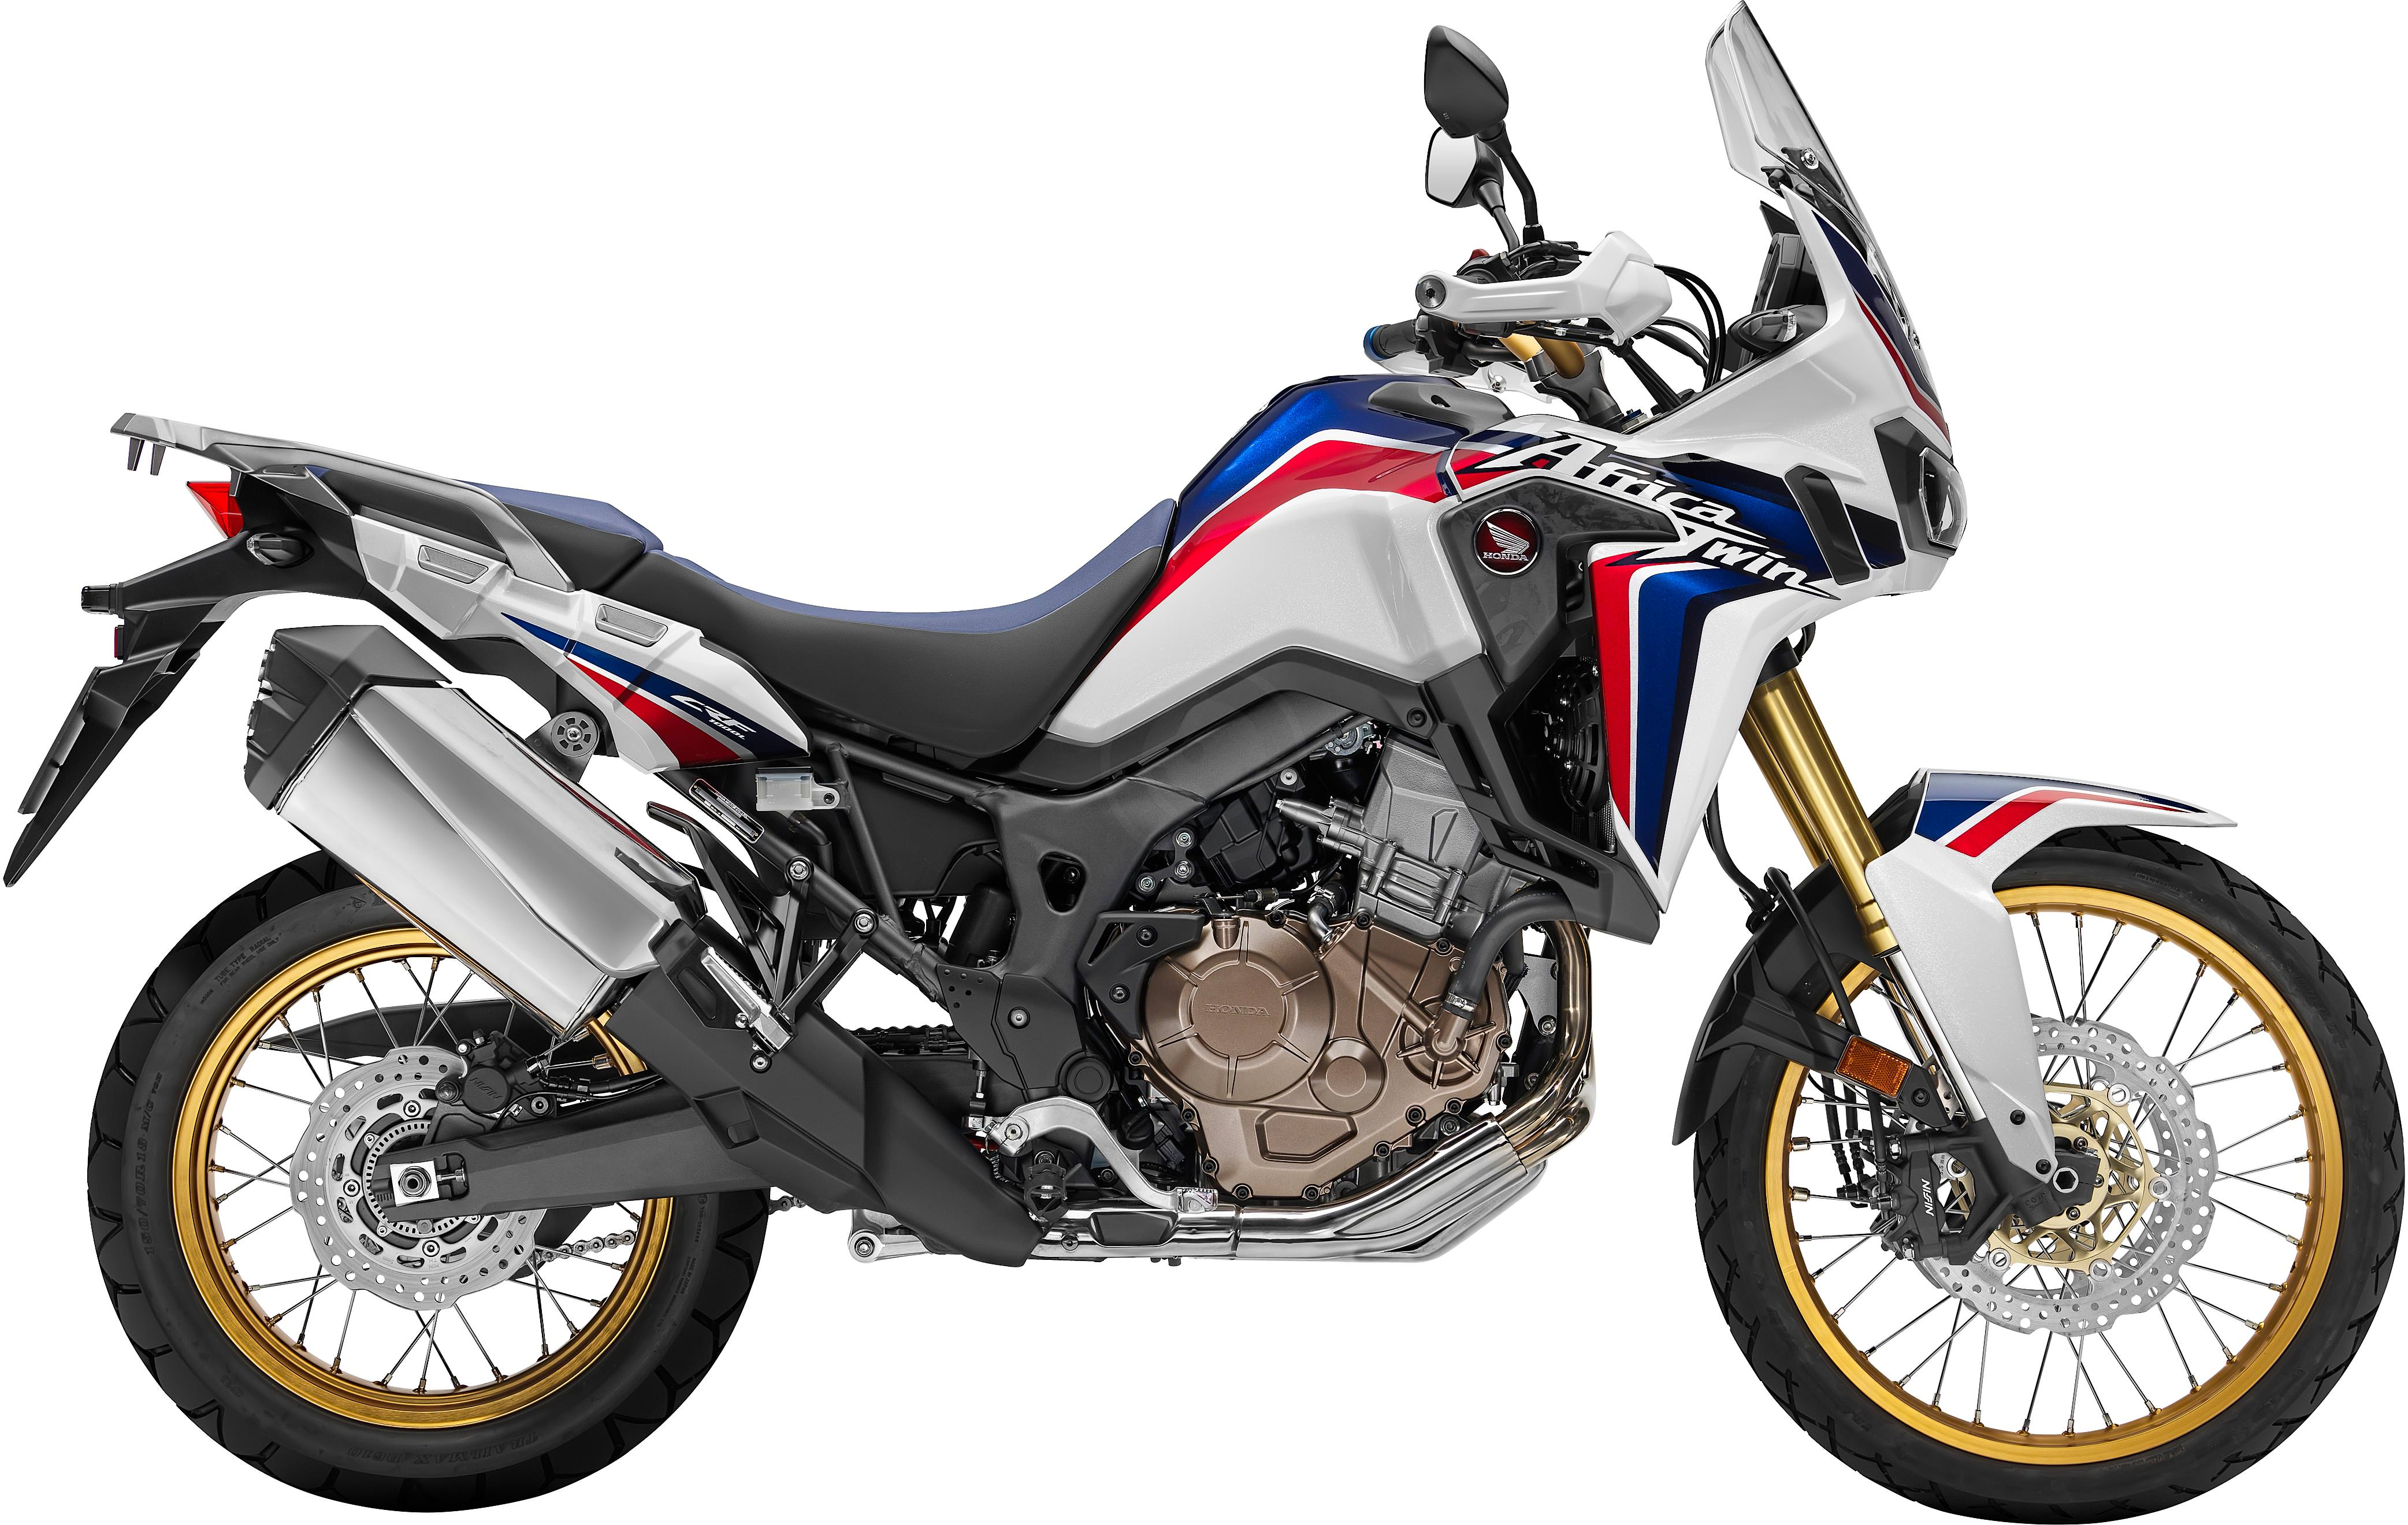 honda crf 1000 l africa twin honda crf1000l moto. Black Bedroom Furniture Sets. Home Design Ideas